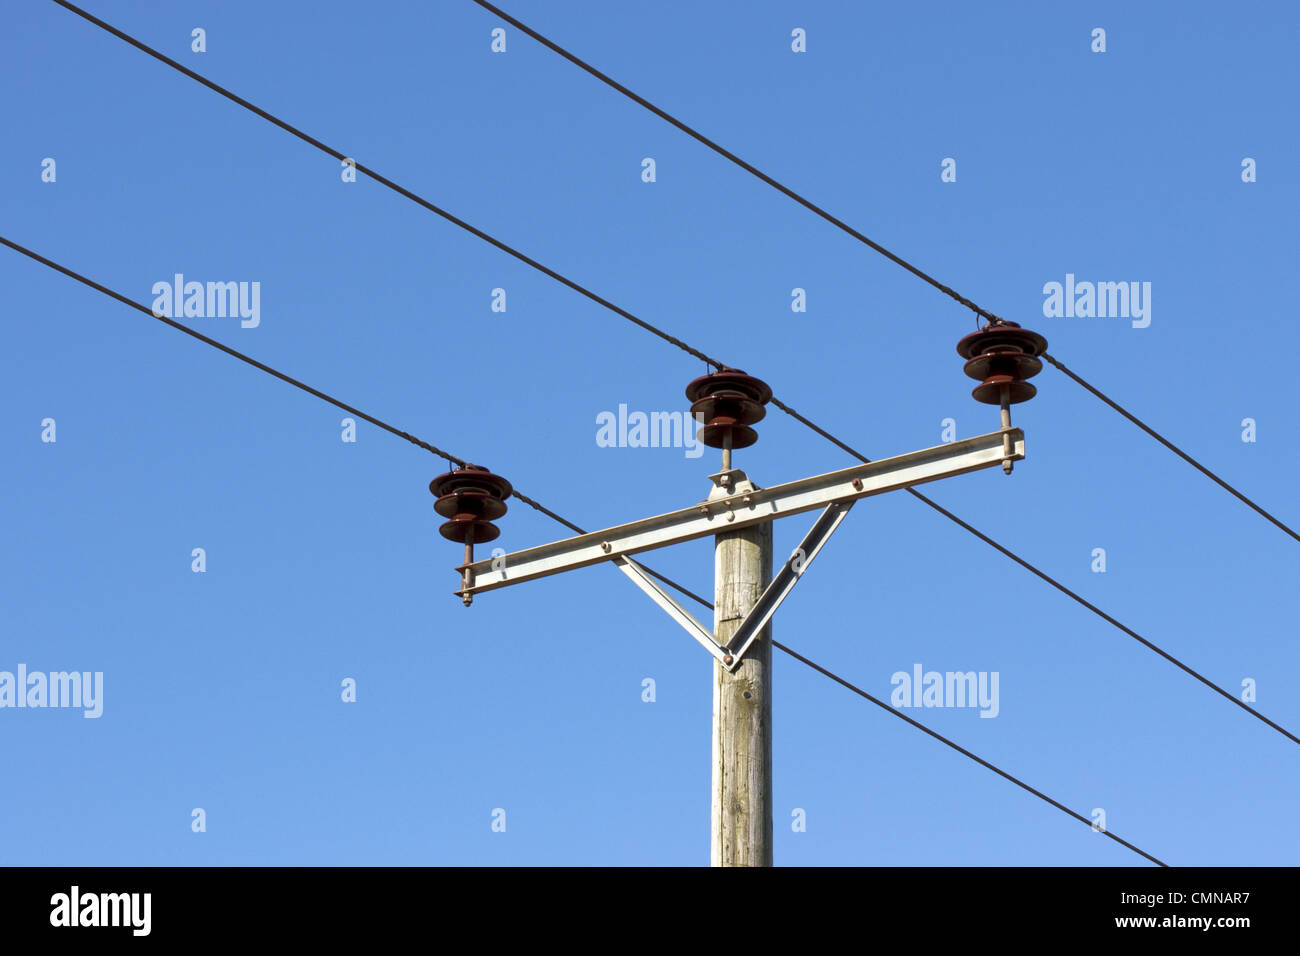 Electricity pole with overhead cables, UK - Stock Image